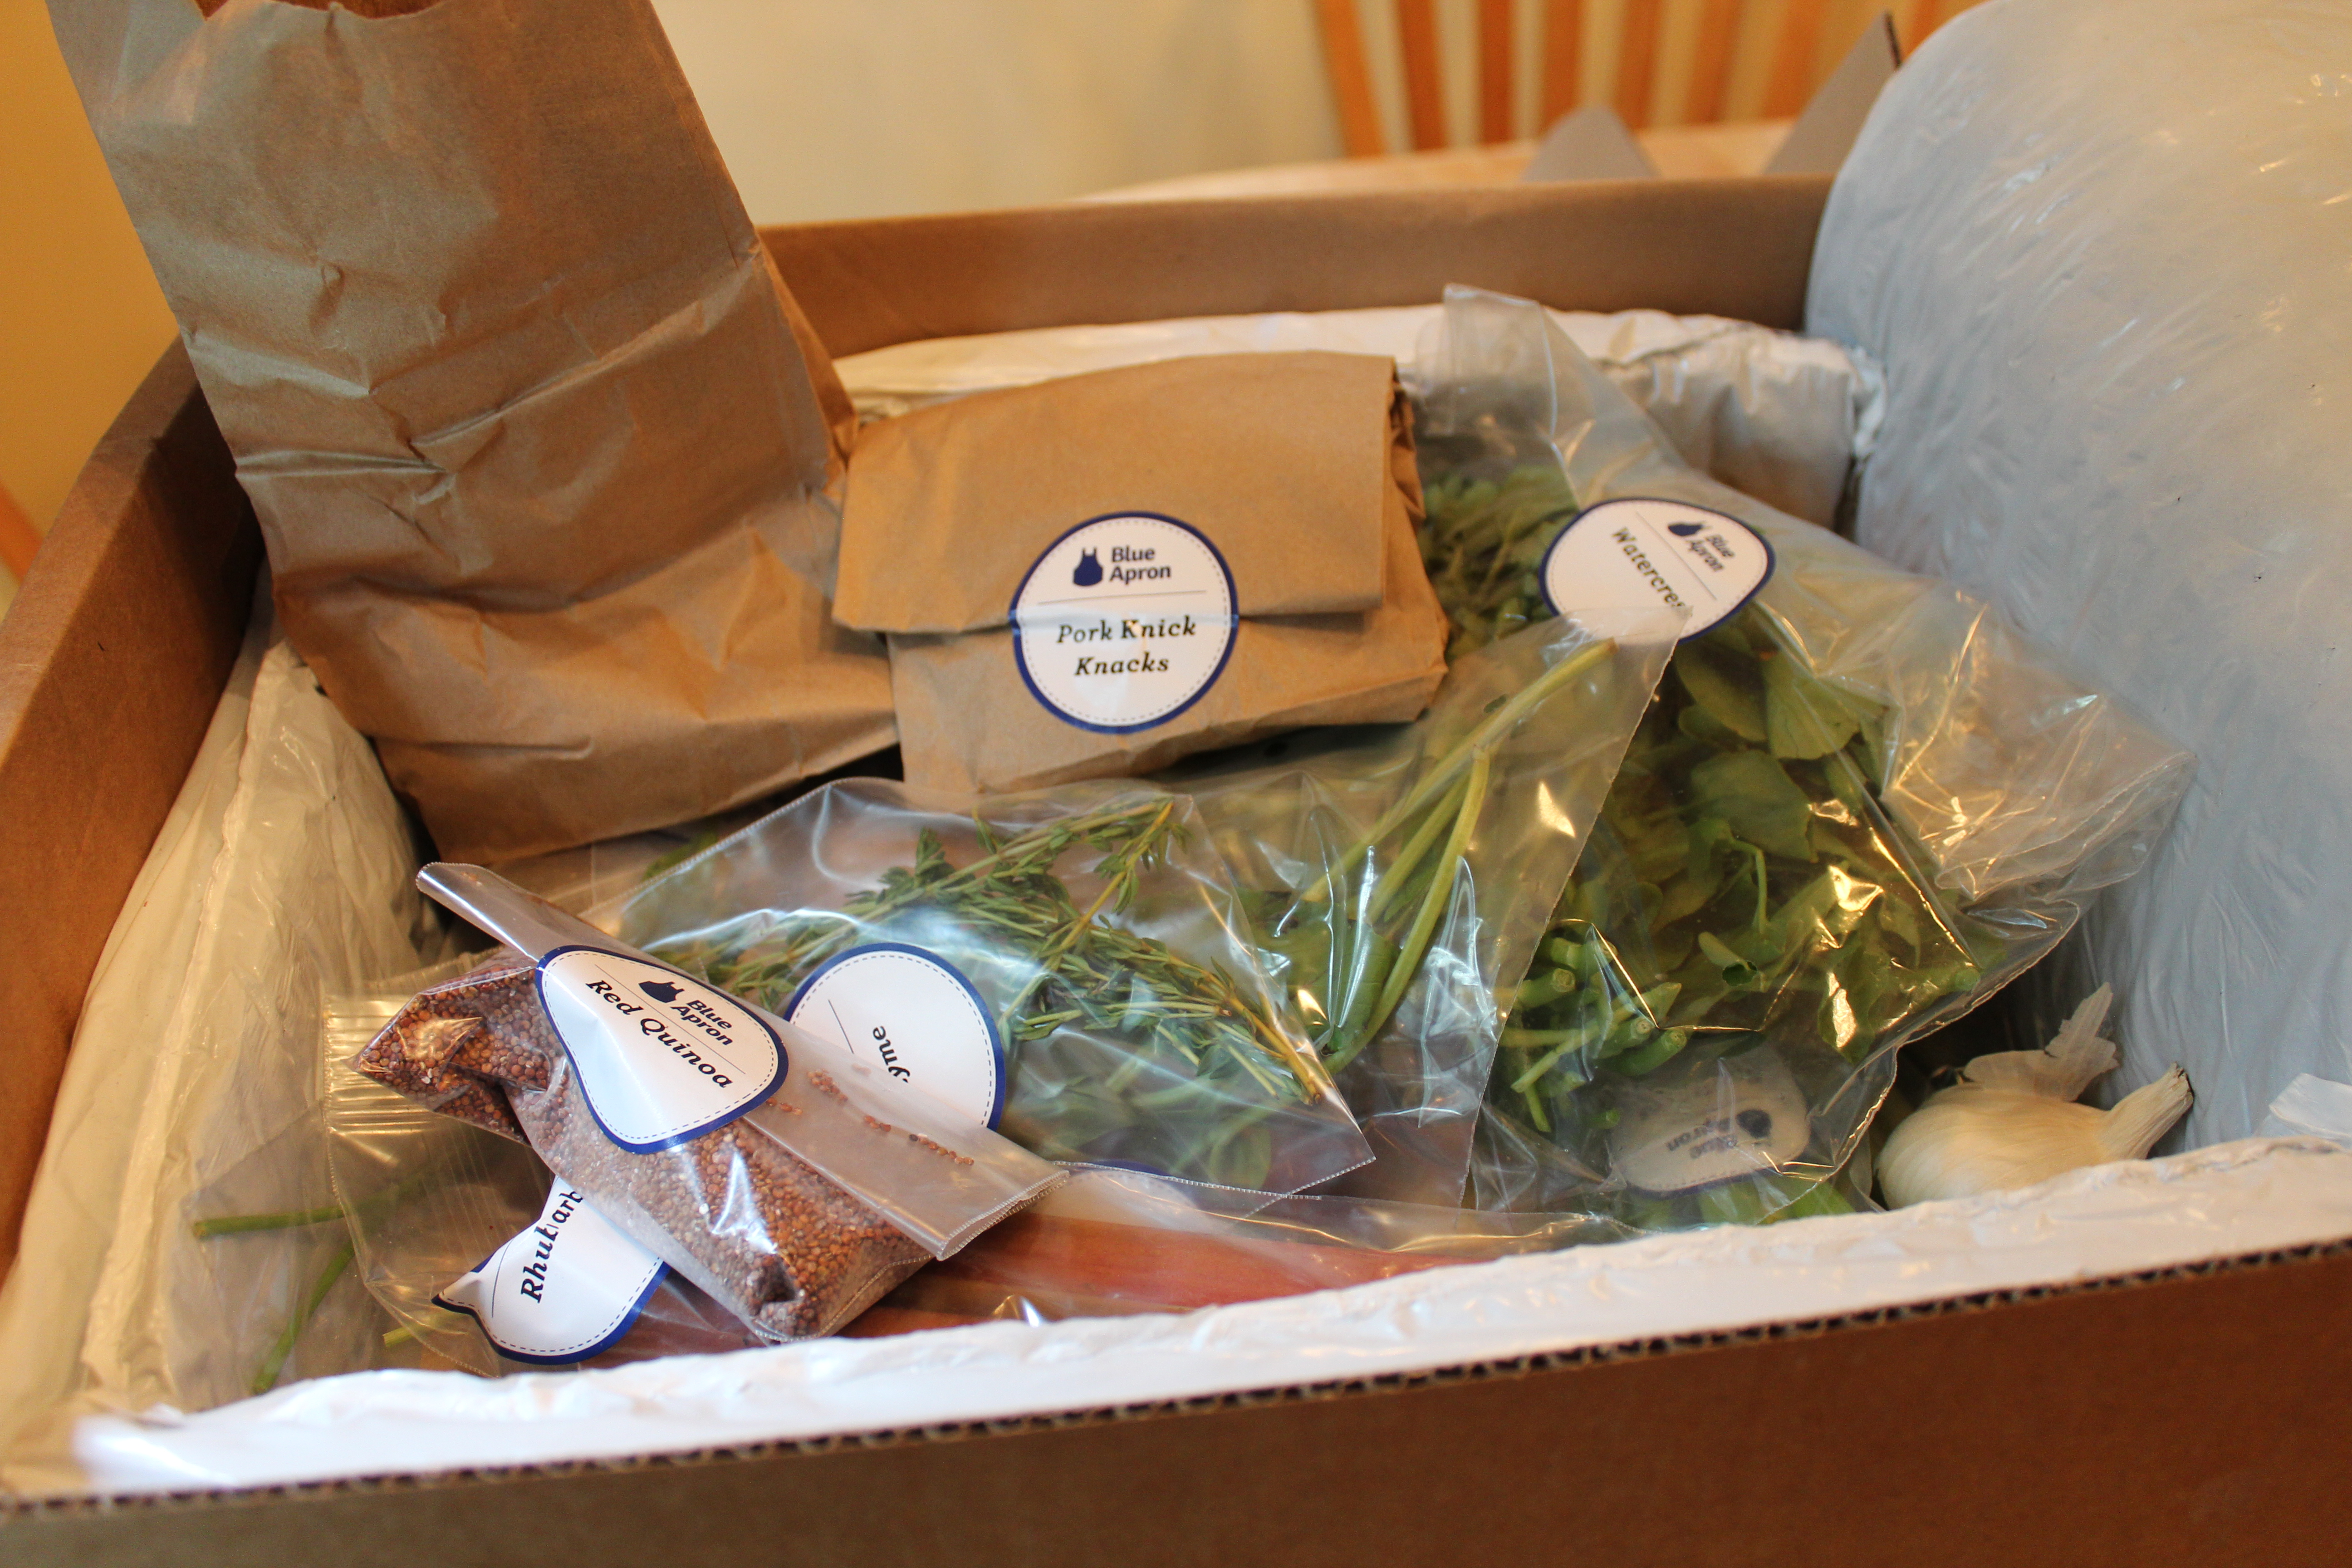 Blue apron packaging - The Three Dishes Included In Our Box Were